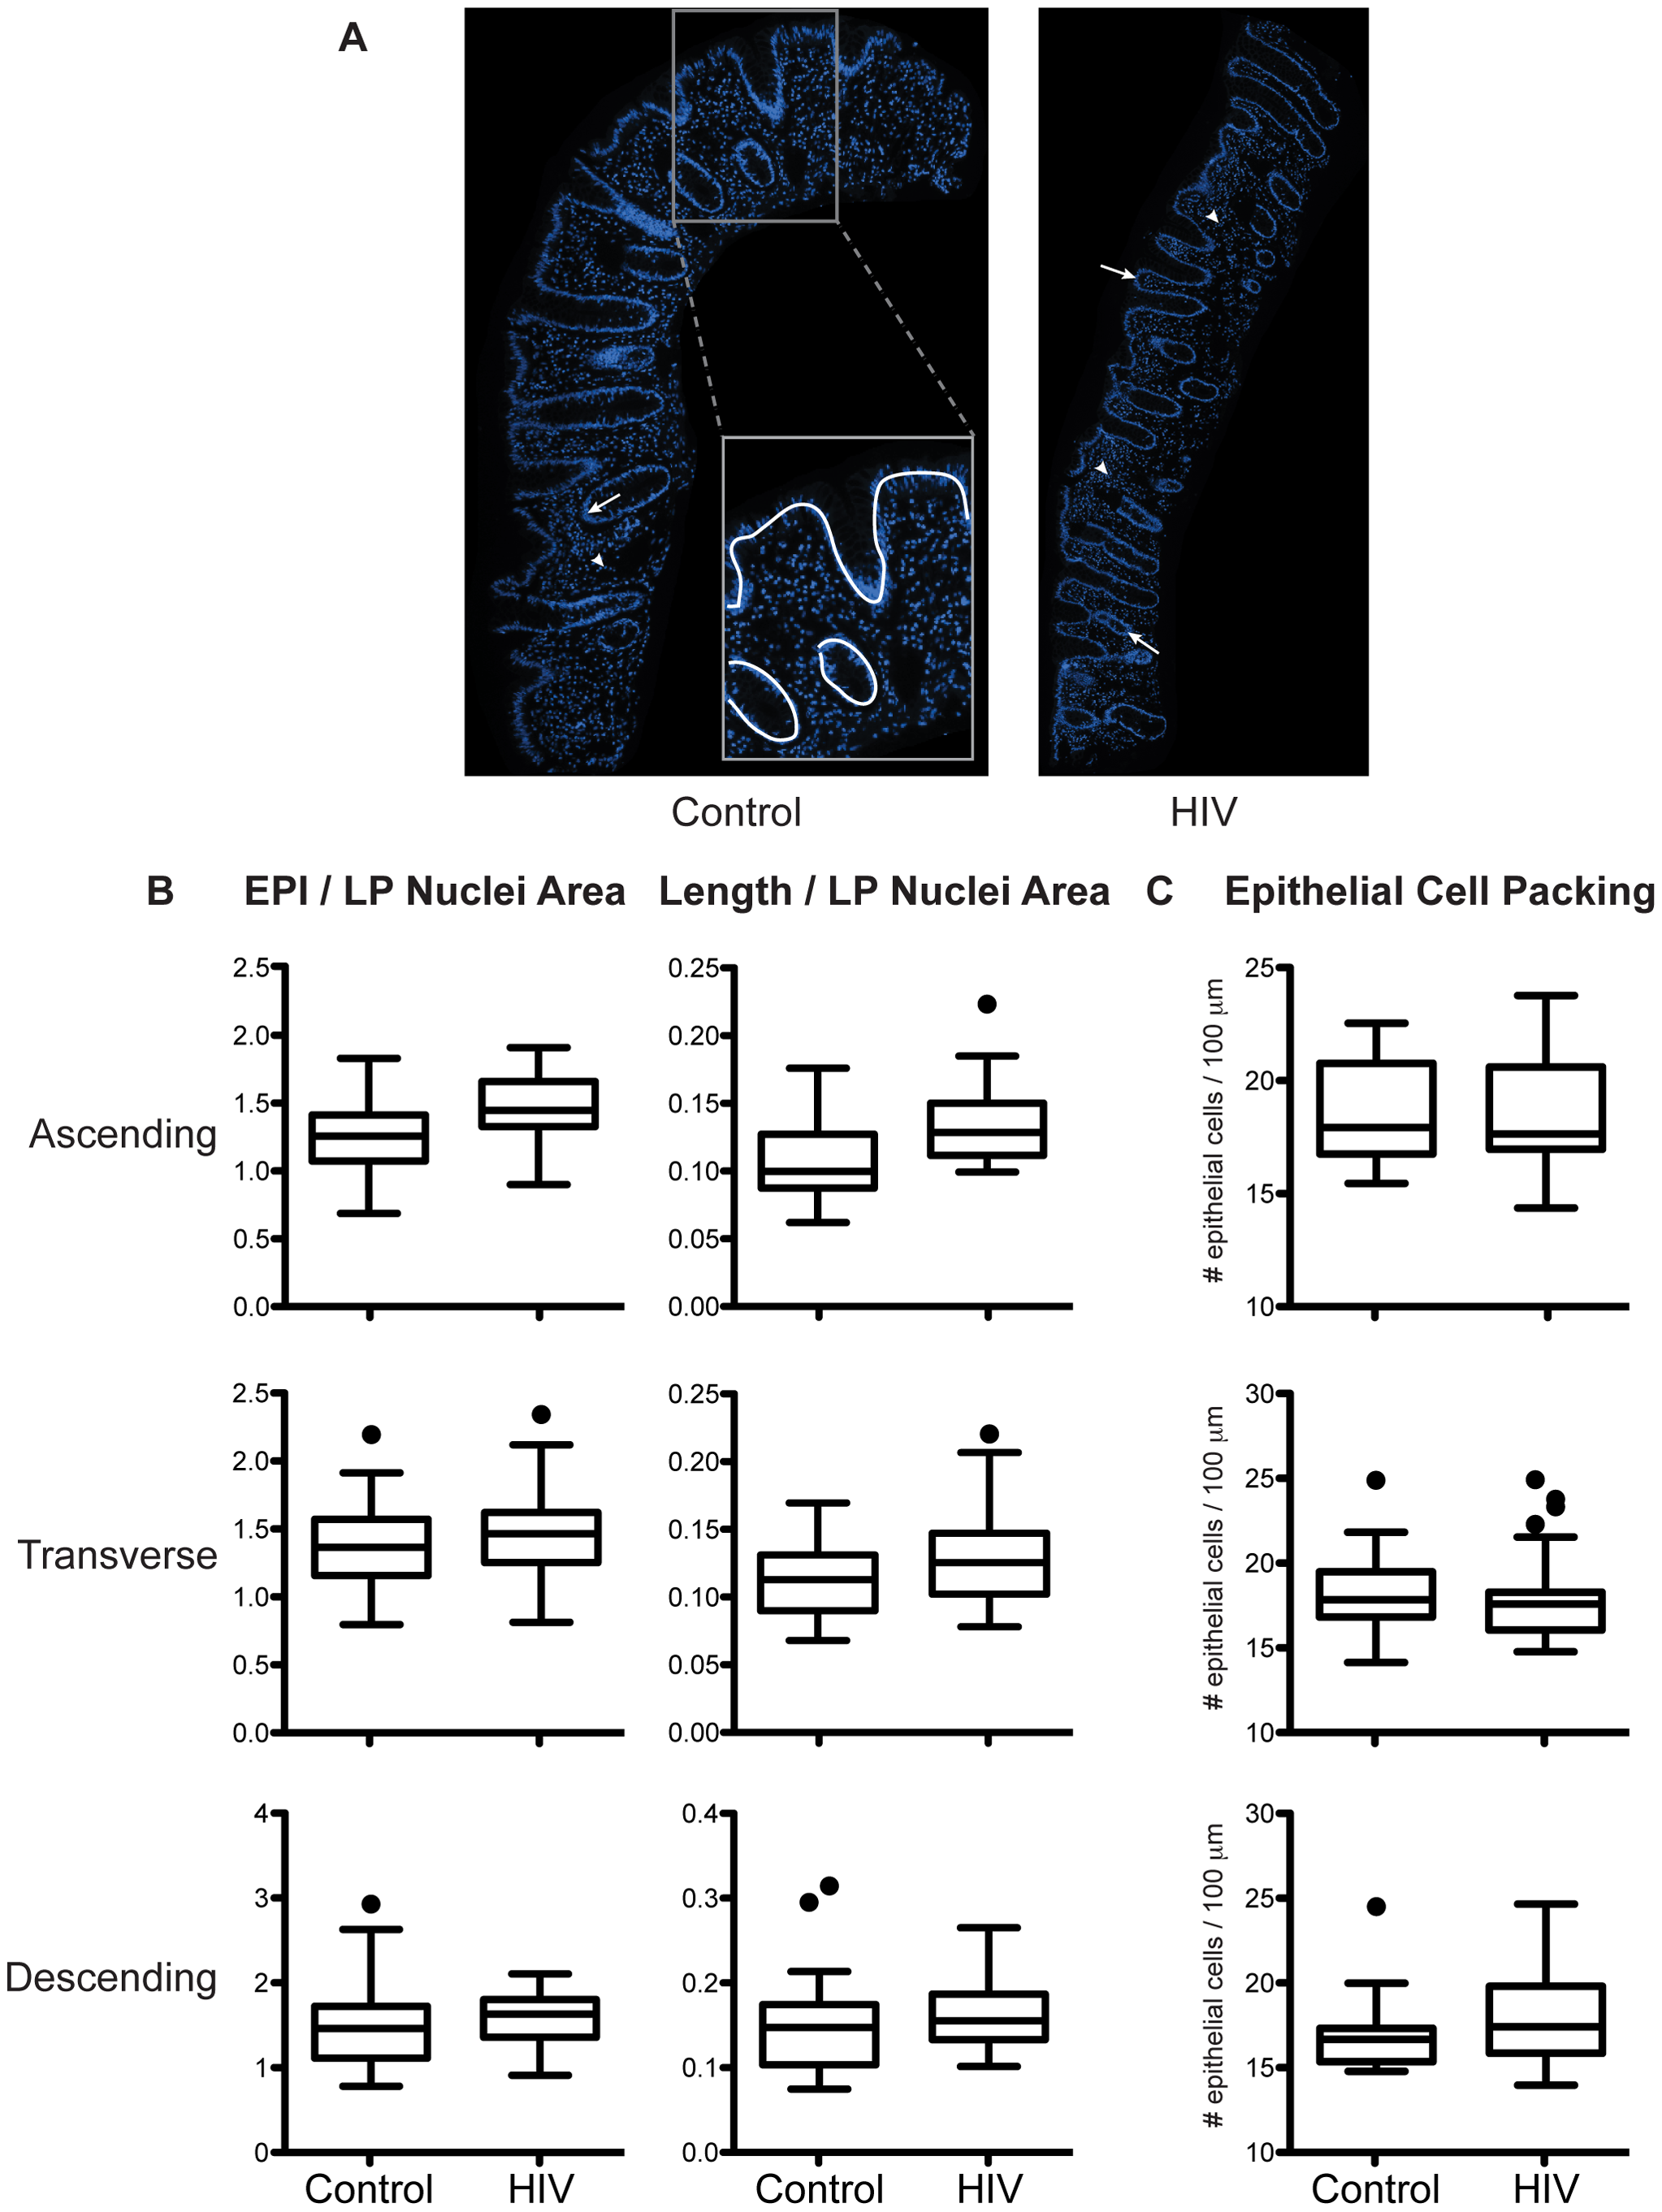 Relative abundance of epithelial cells in intestinal biopsies is not decreased in HIV+ individuals.